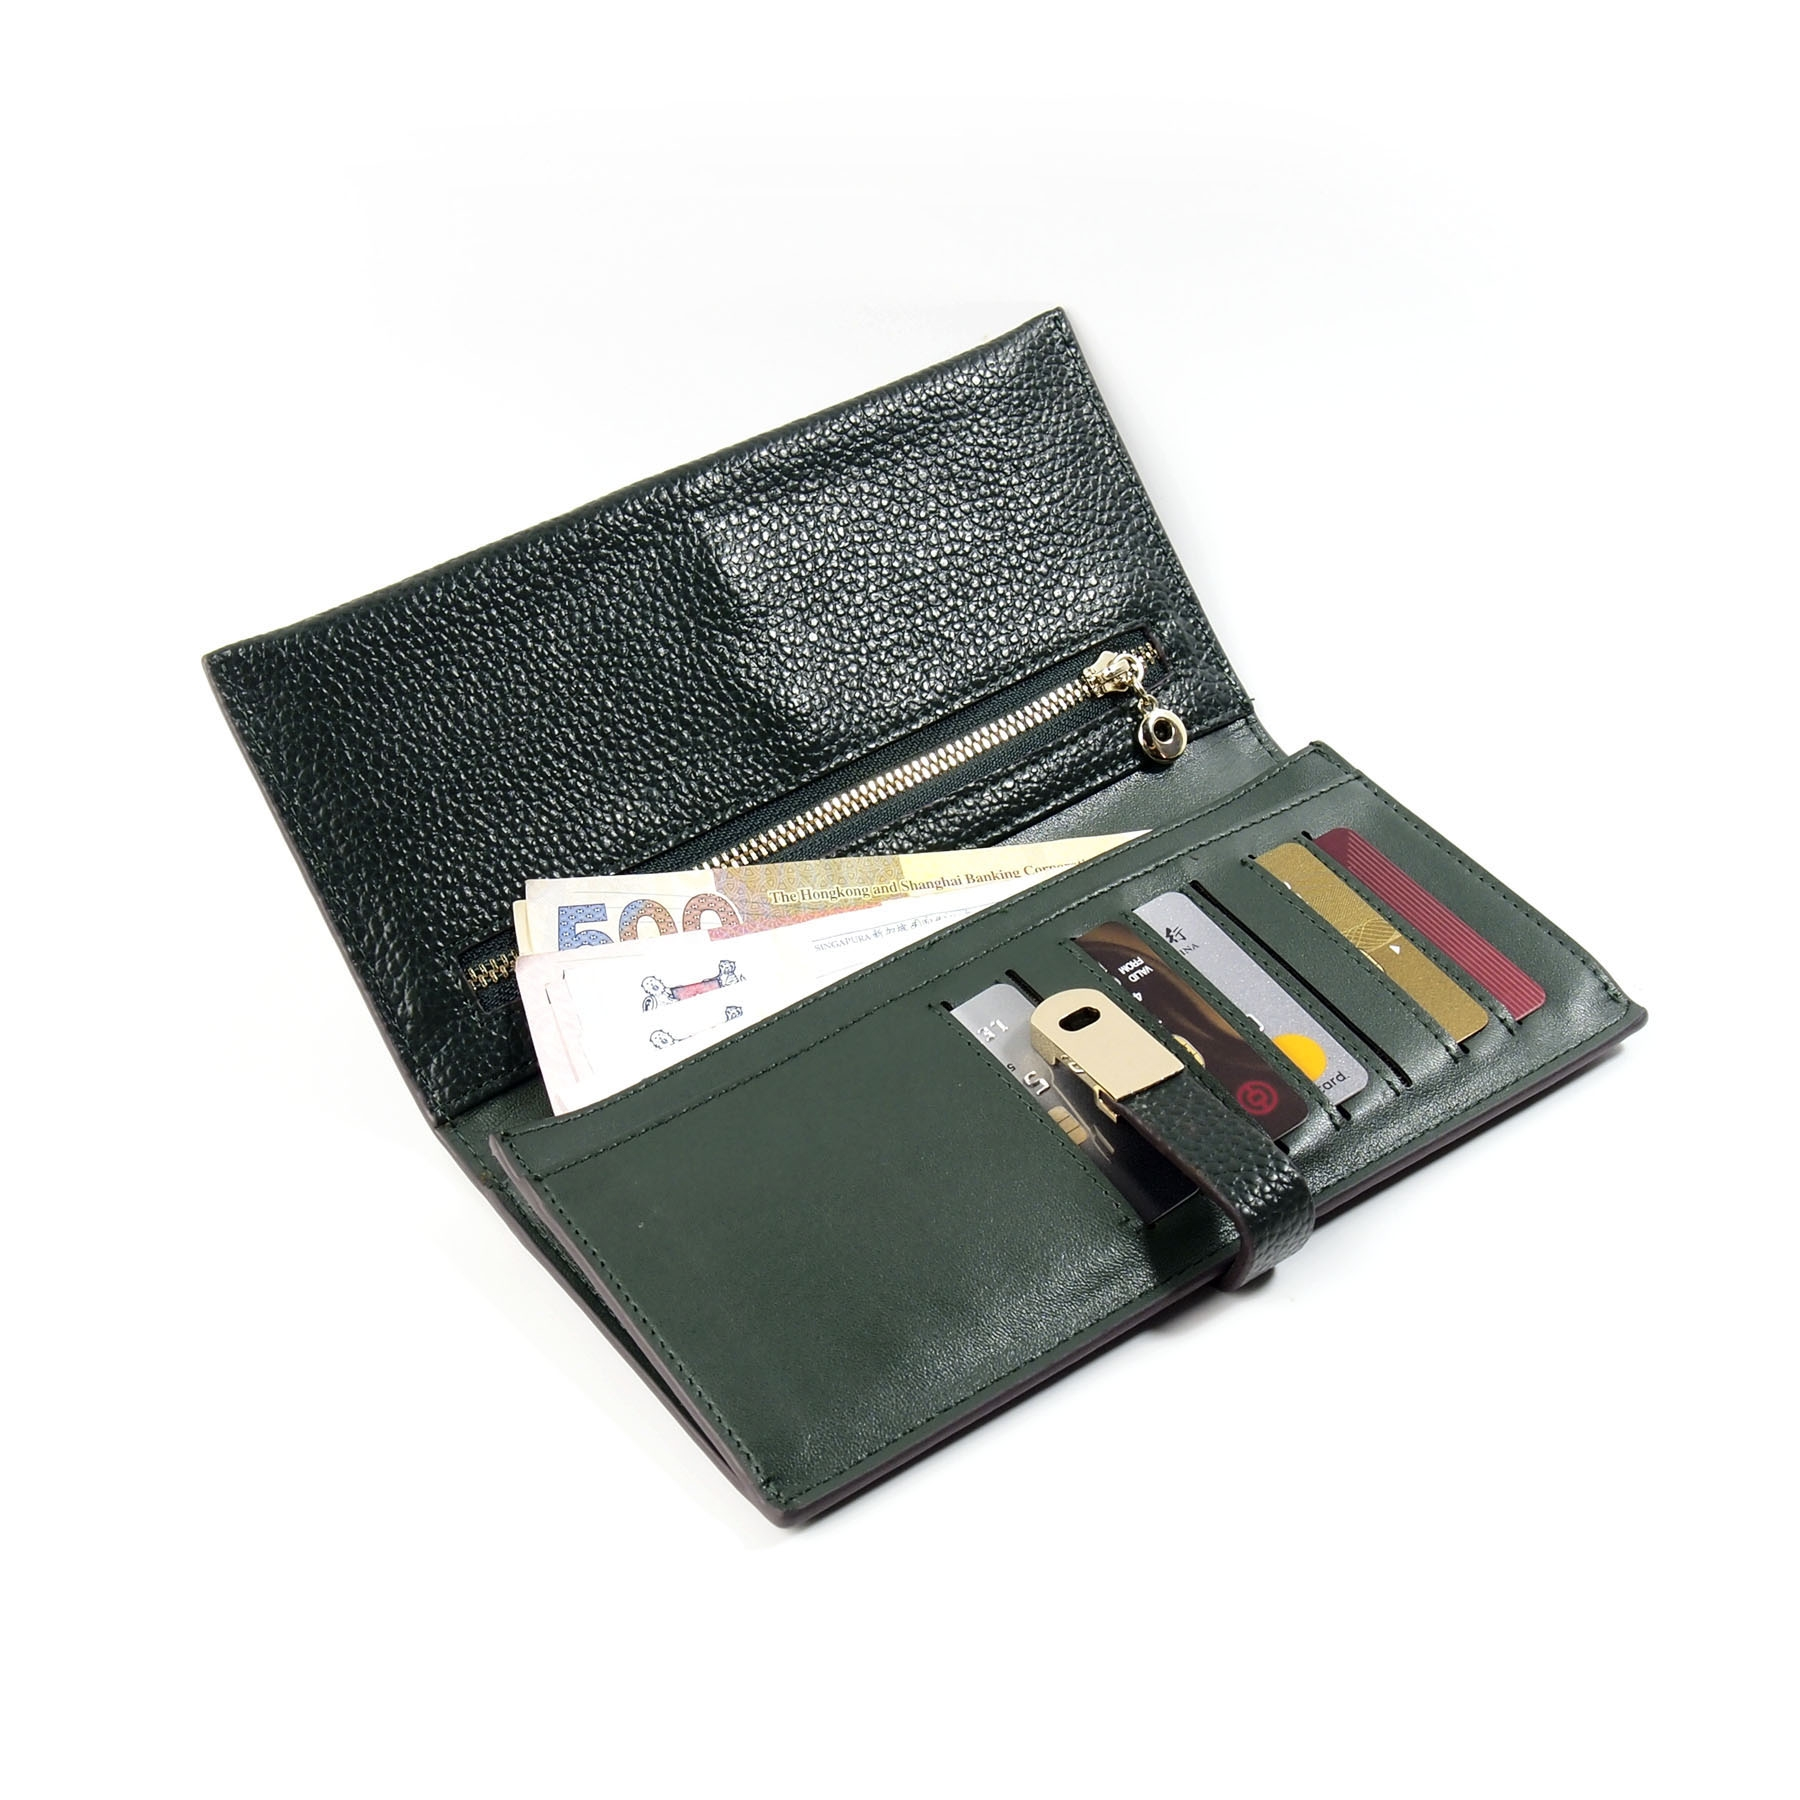 Butterfield Ellie Wallet Interiorl View